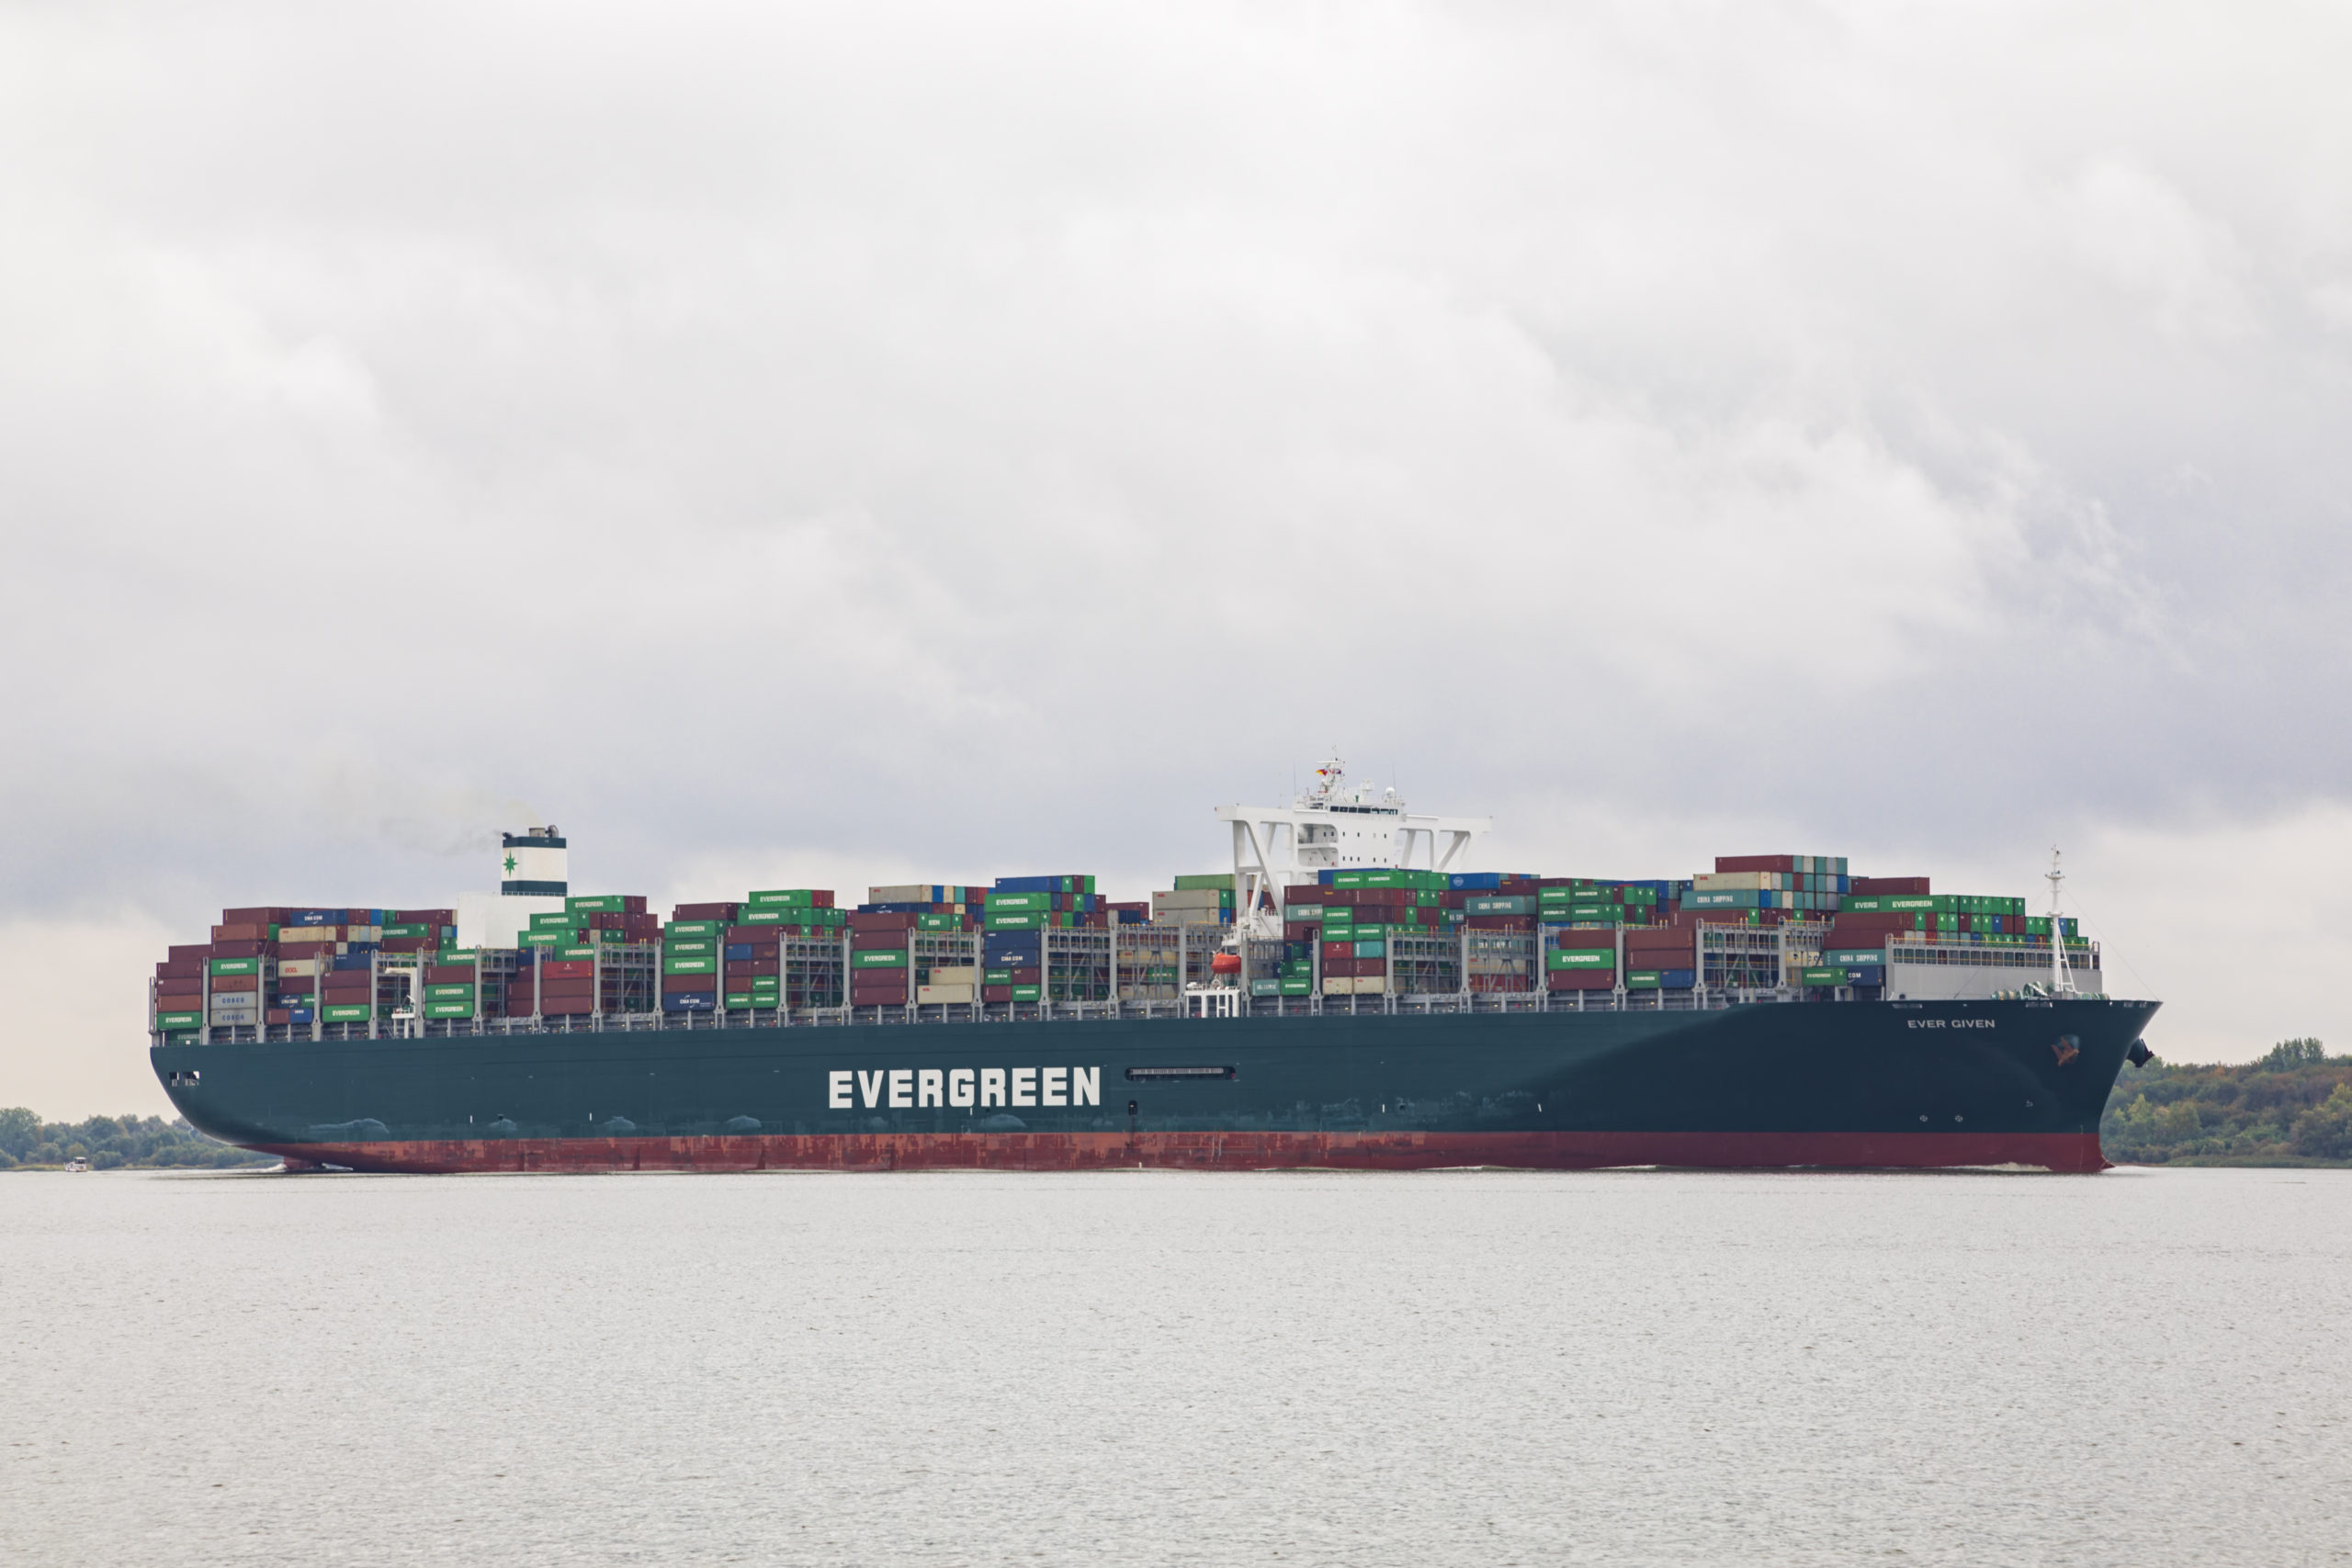 Container ship EVER GIVEN on Elbe river